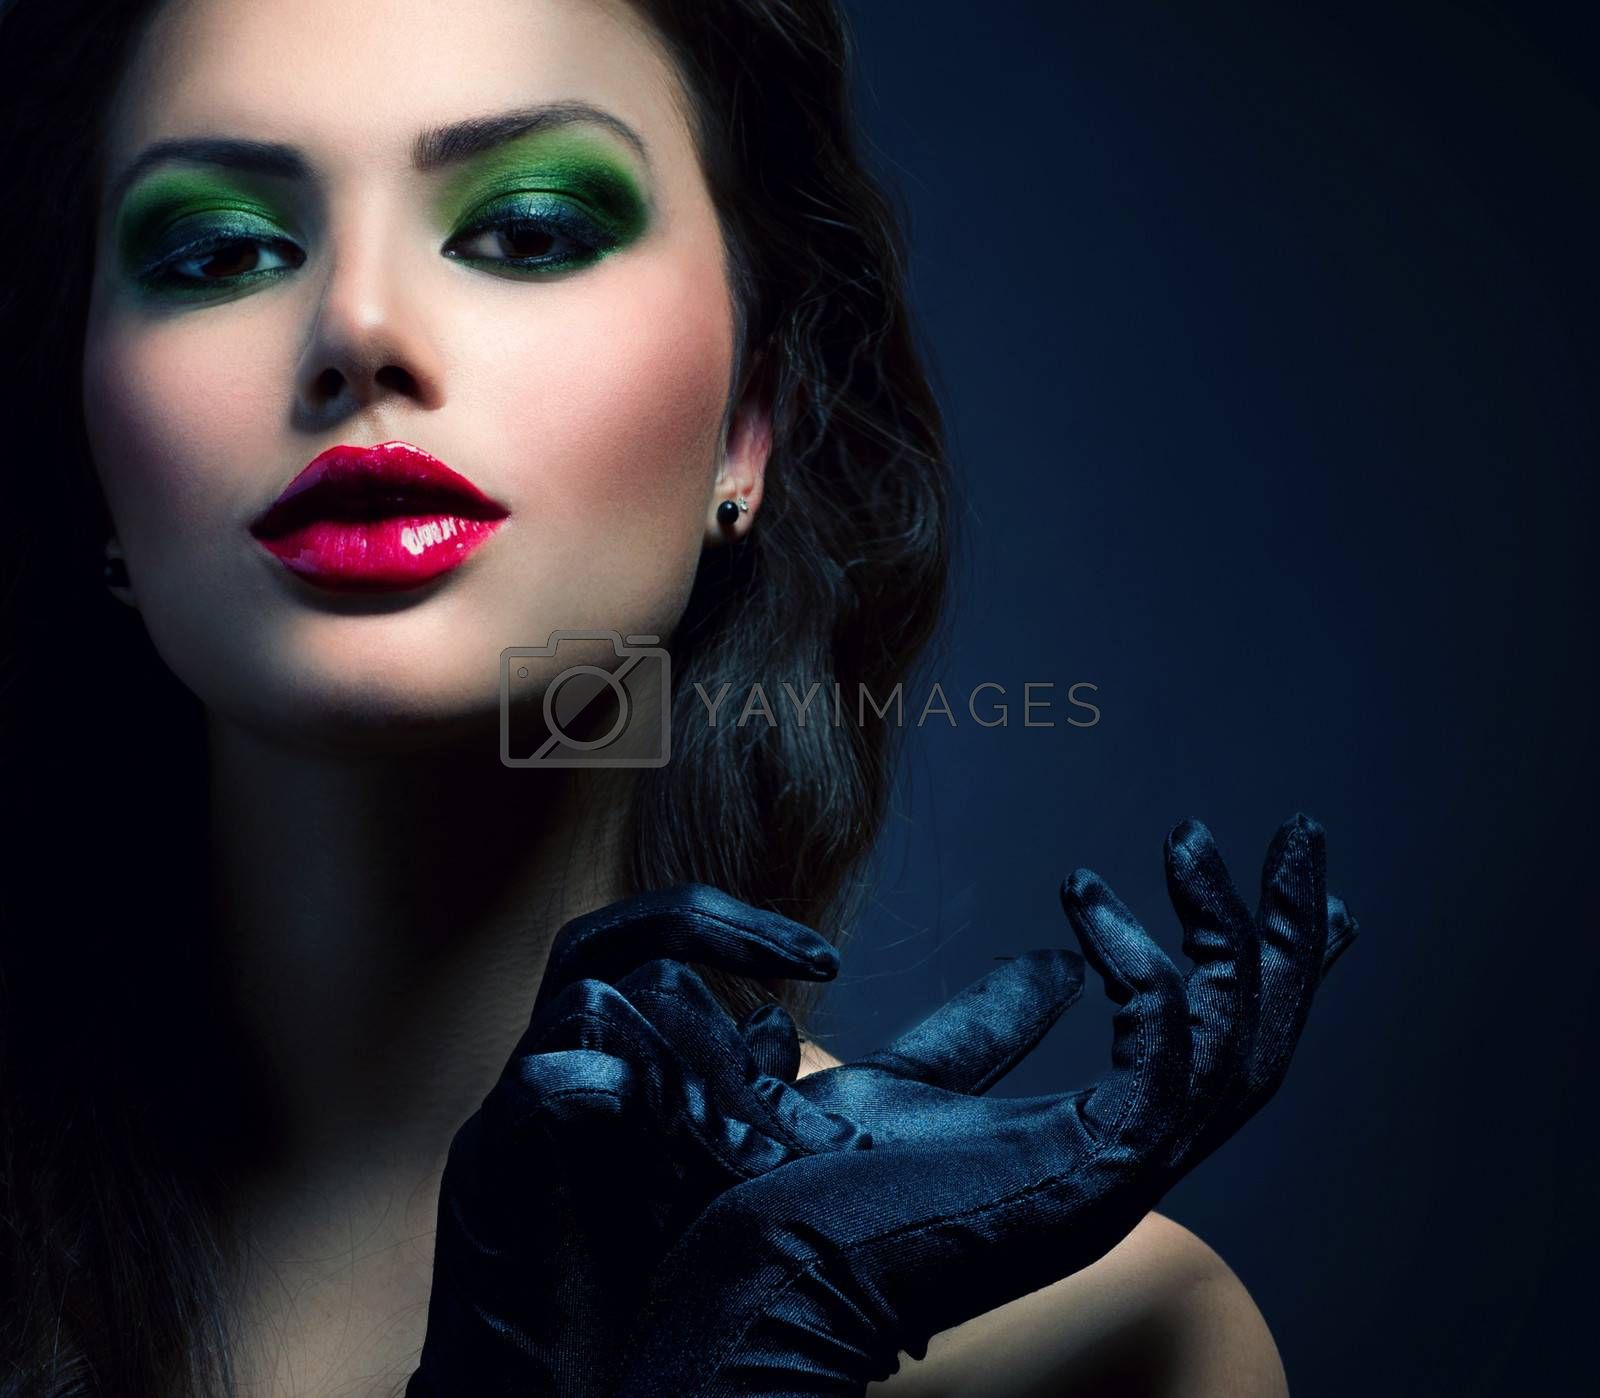 Beauty Fashion Glamour Girl. Vintage Style Model Wearing Gloves by Subbotina Anna